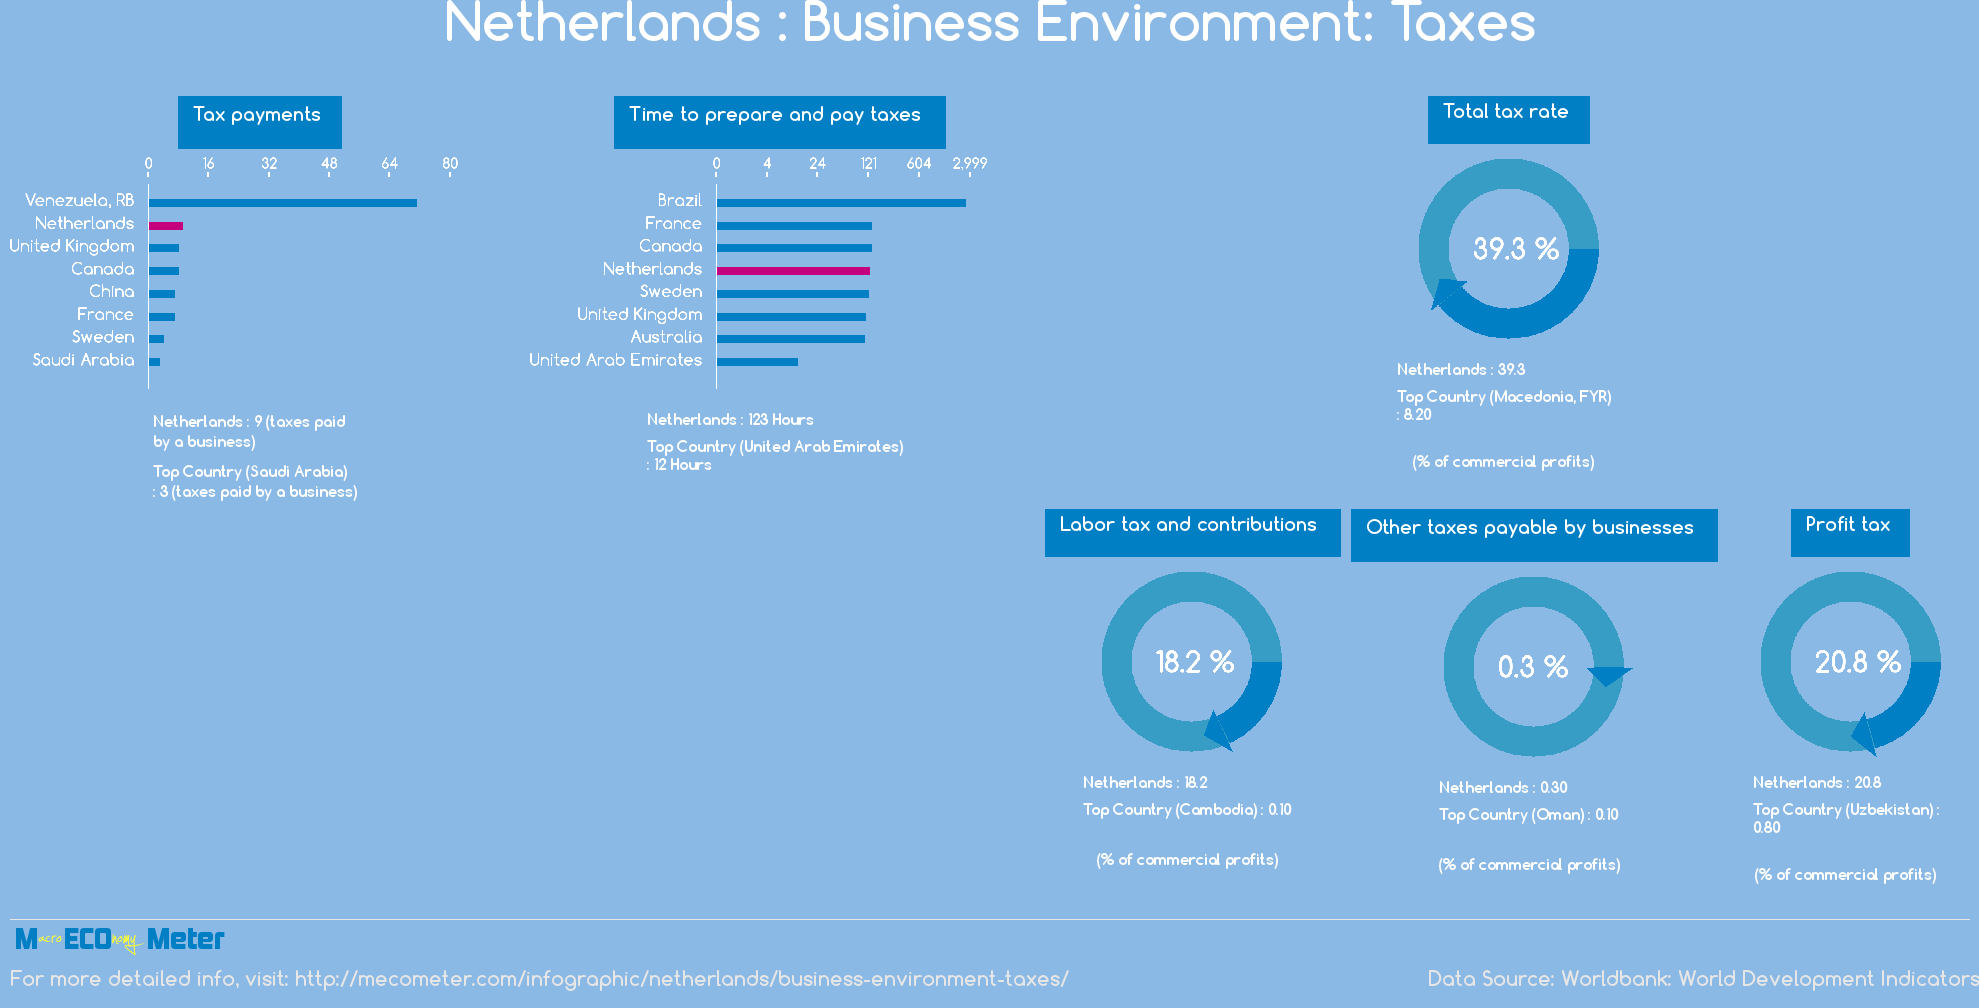 Netherlands : Business Environment: Taxes